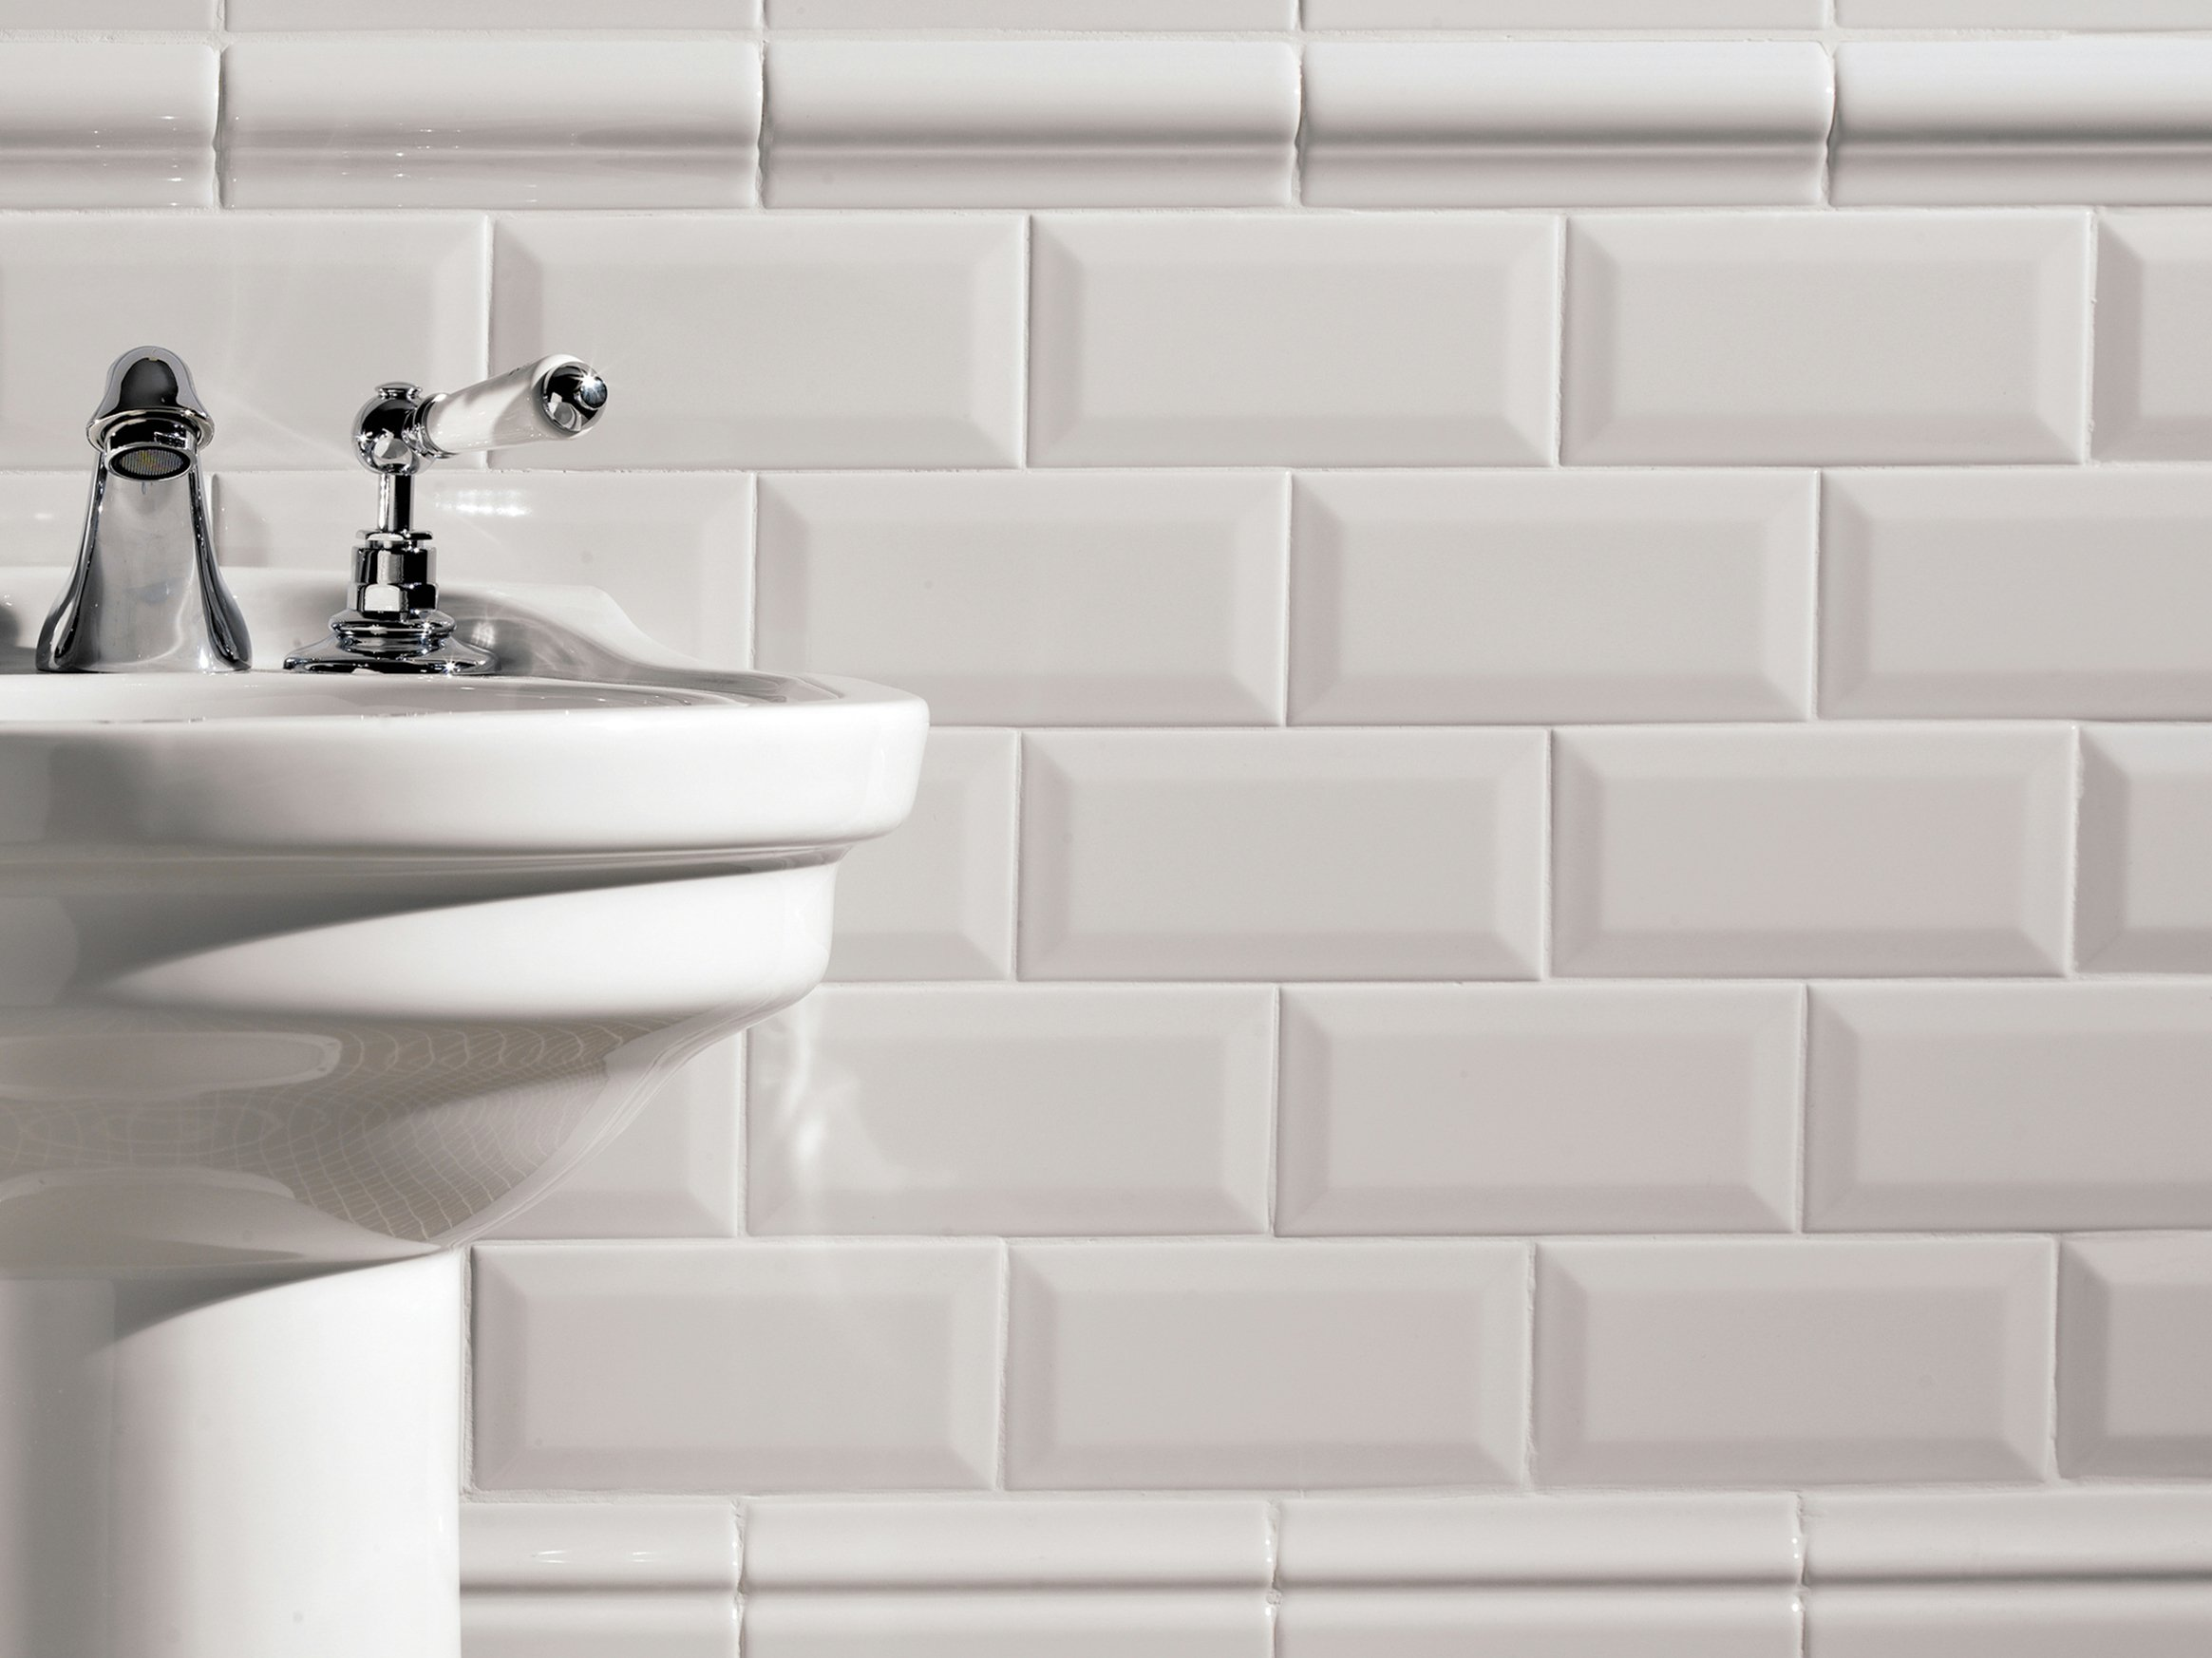 Double fired ceramic wall tiles simply by devon devon Fired tiles